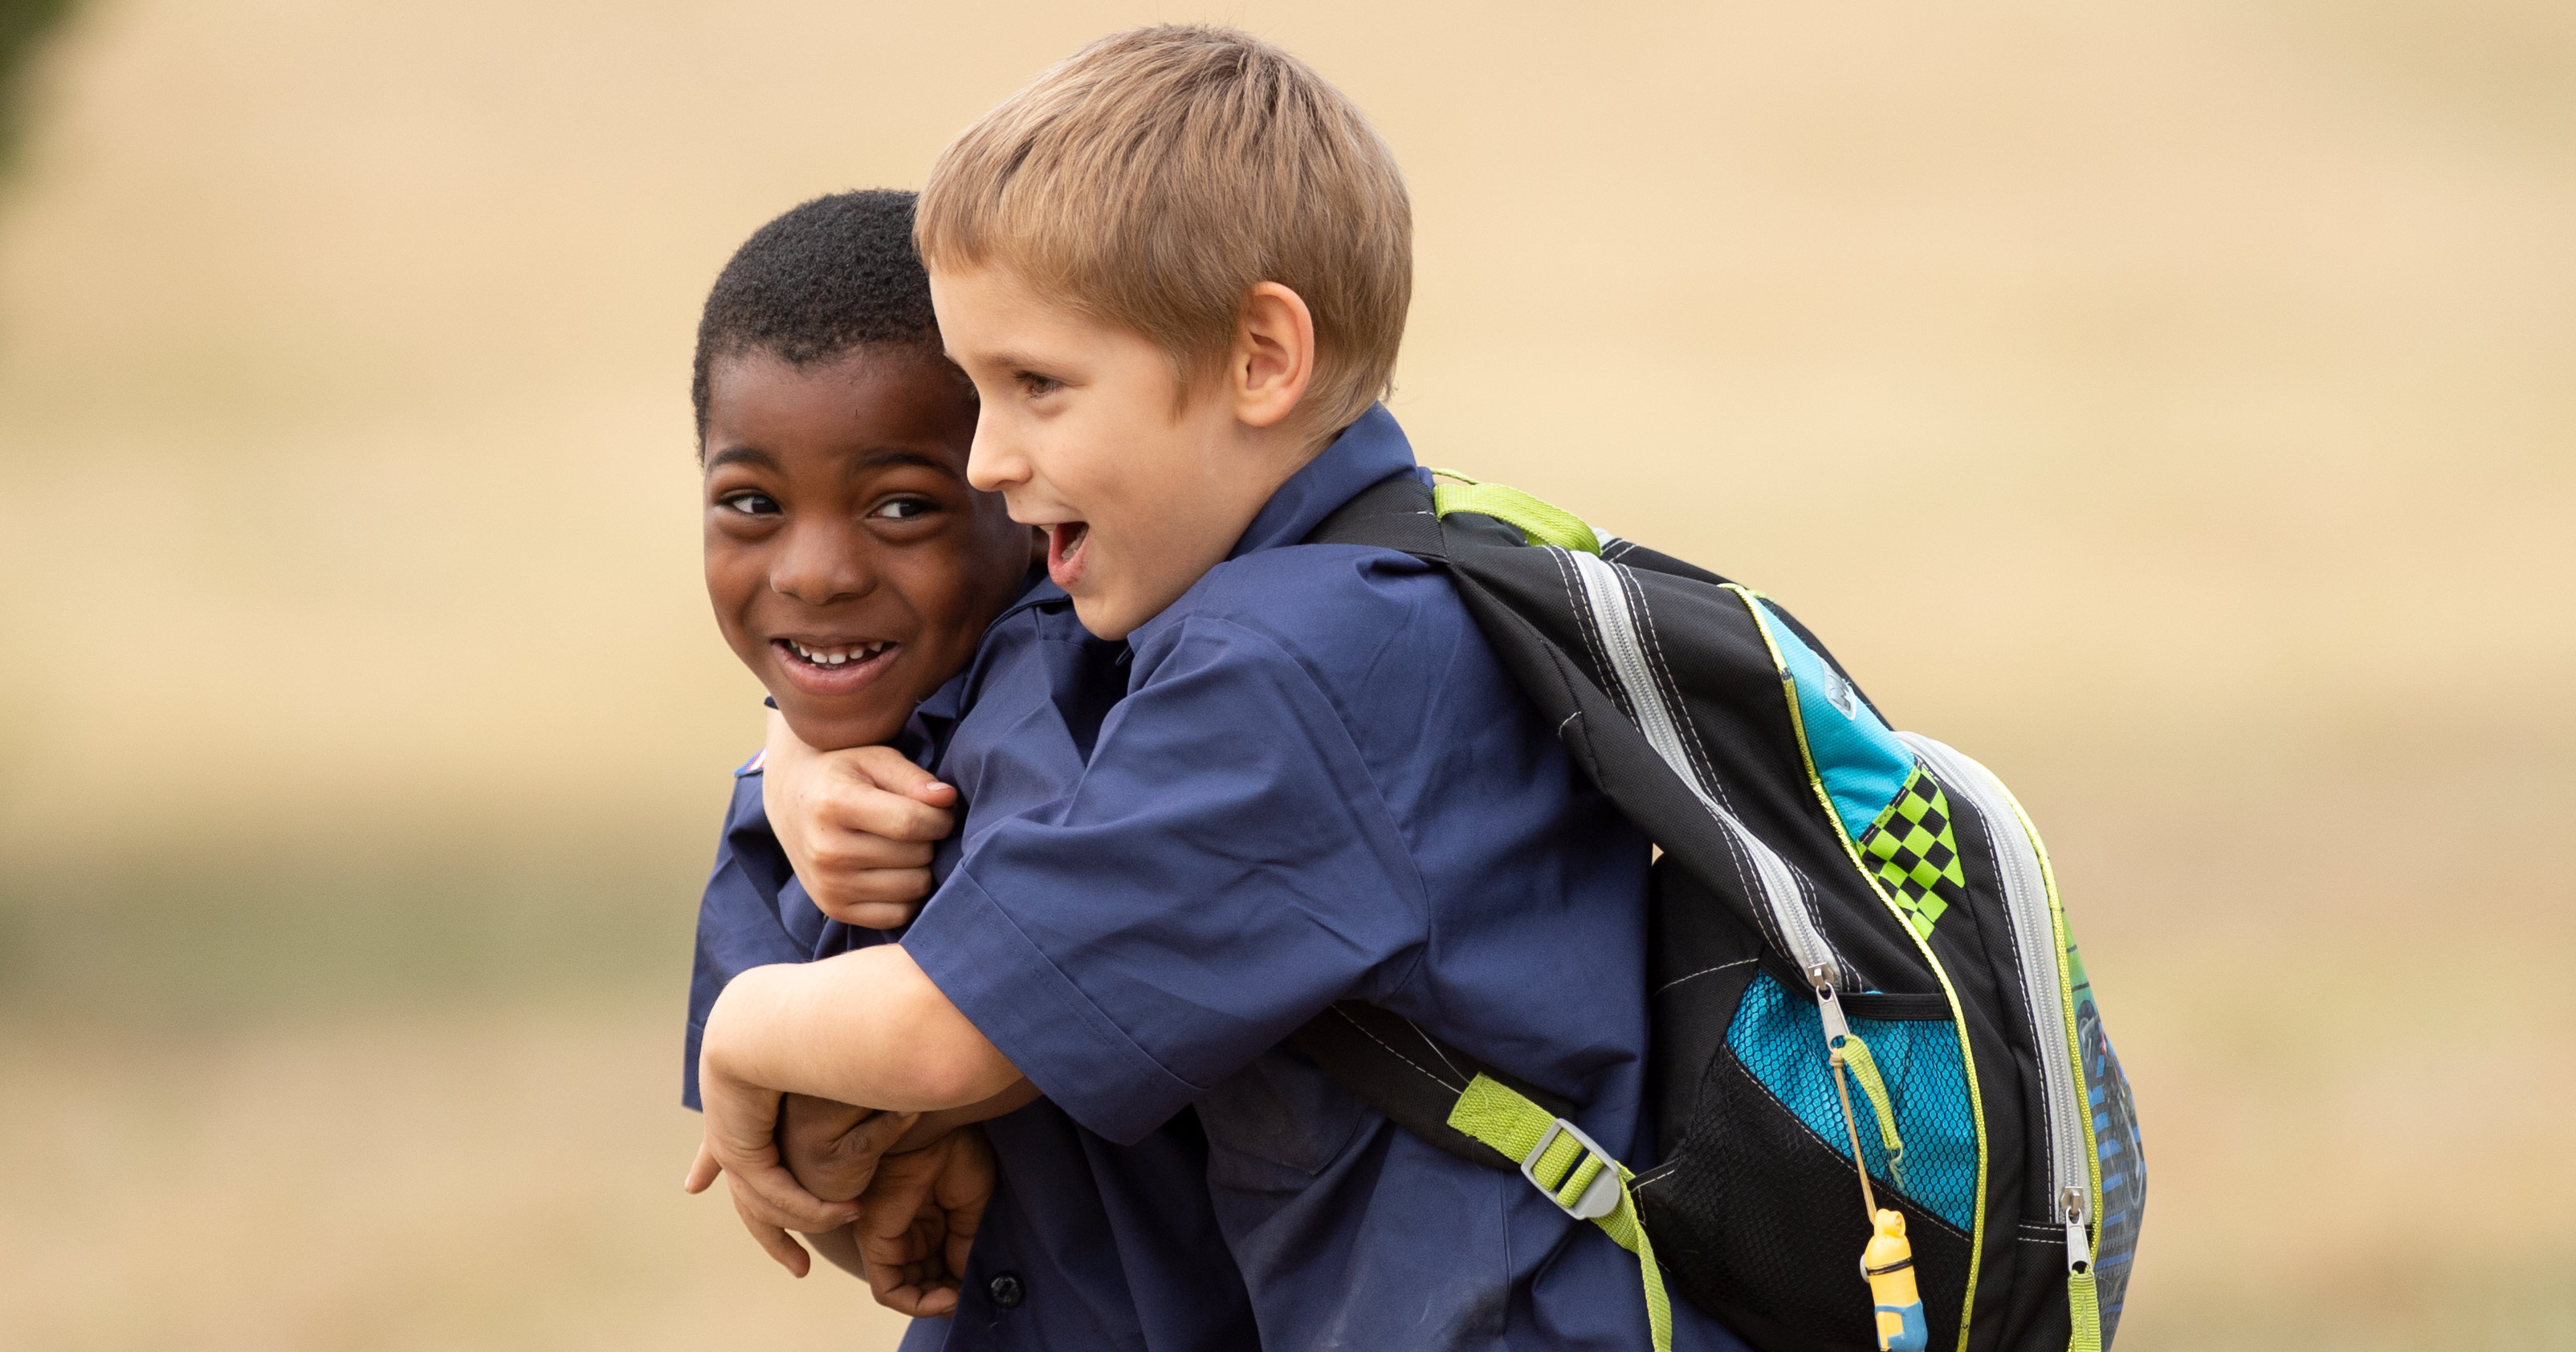 Remind your Scouts to combat bullying by showing kindness to their classmates